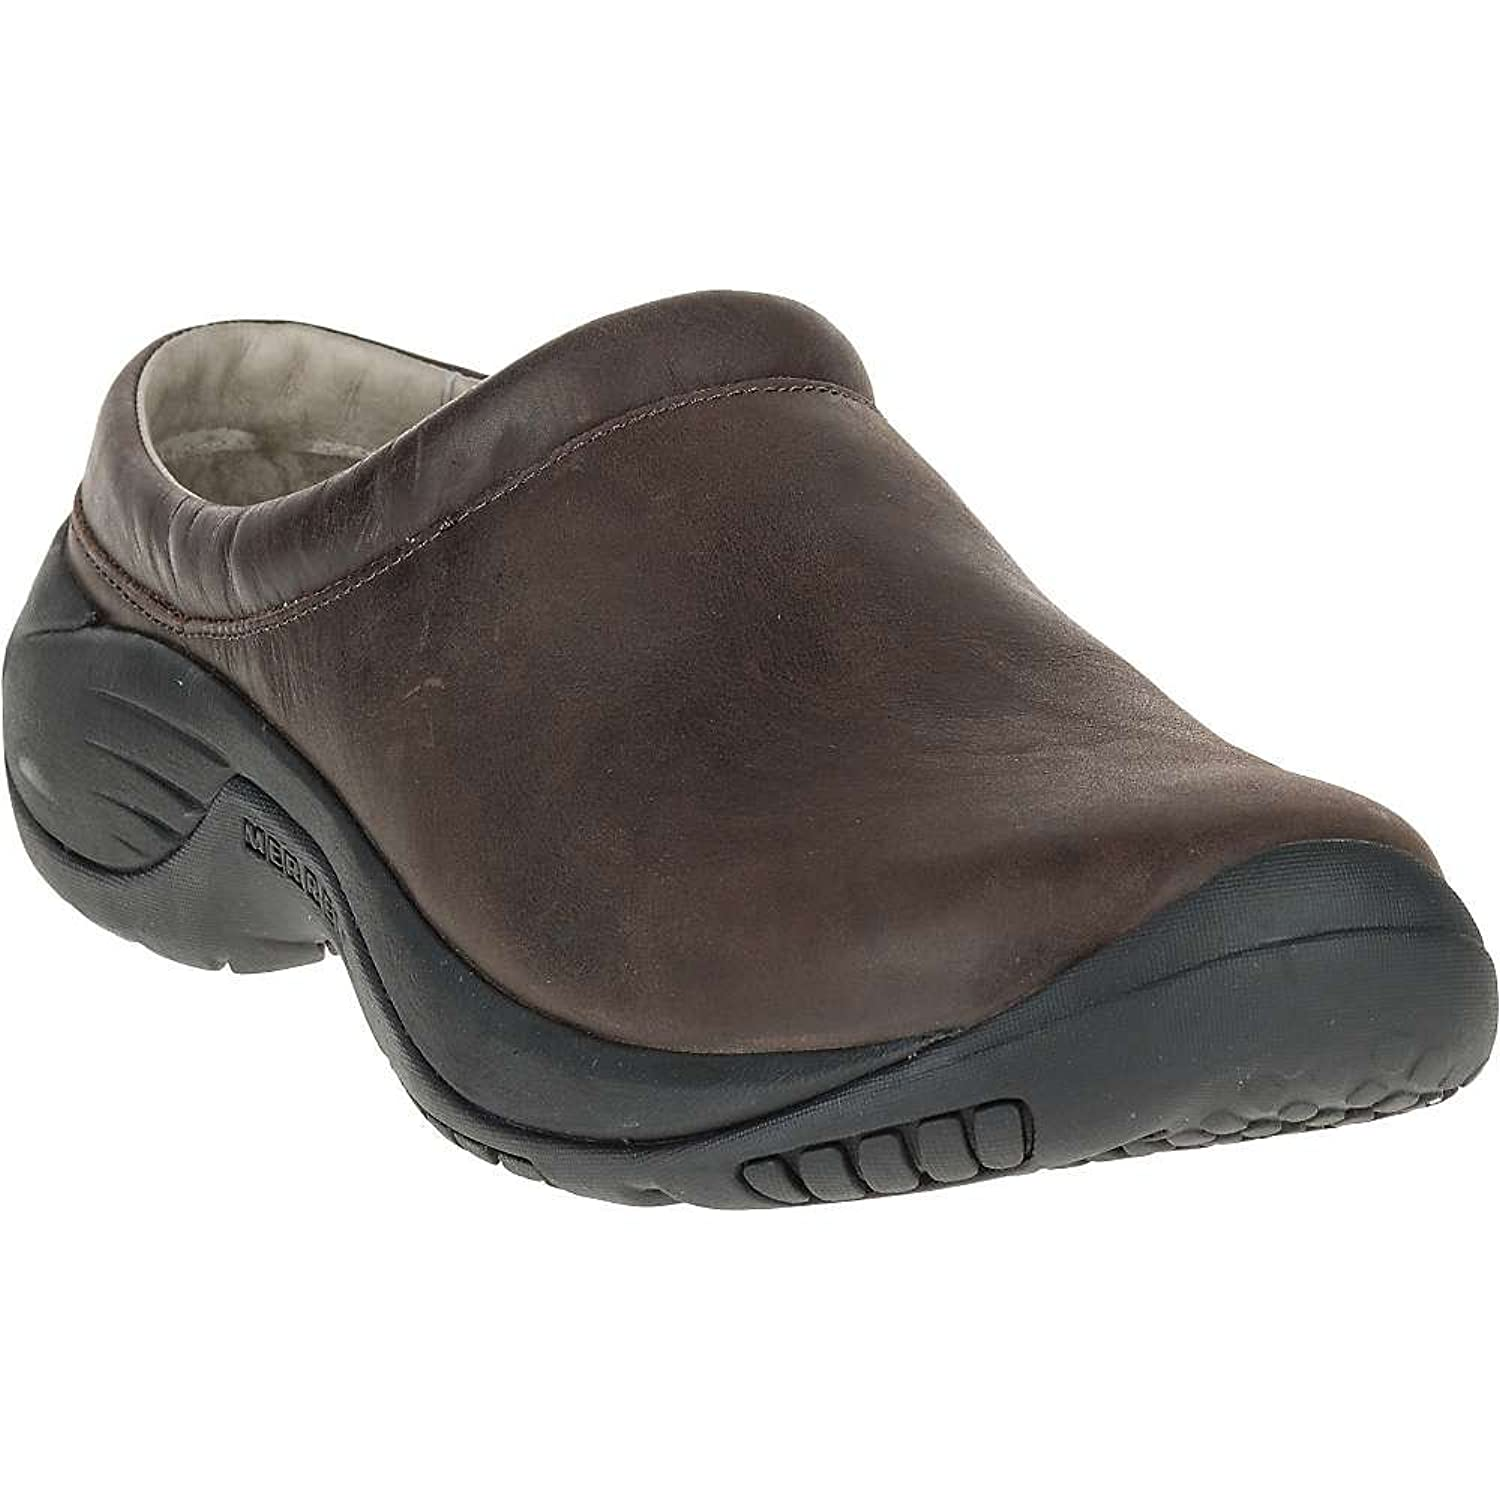 メレル メンズ スニーカー Merrell Men's Encore Chill Smooth Shoe [並行輸入品] B07BWDCNDB